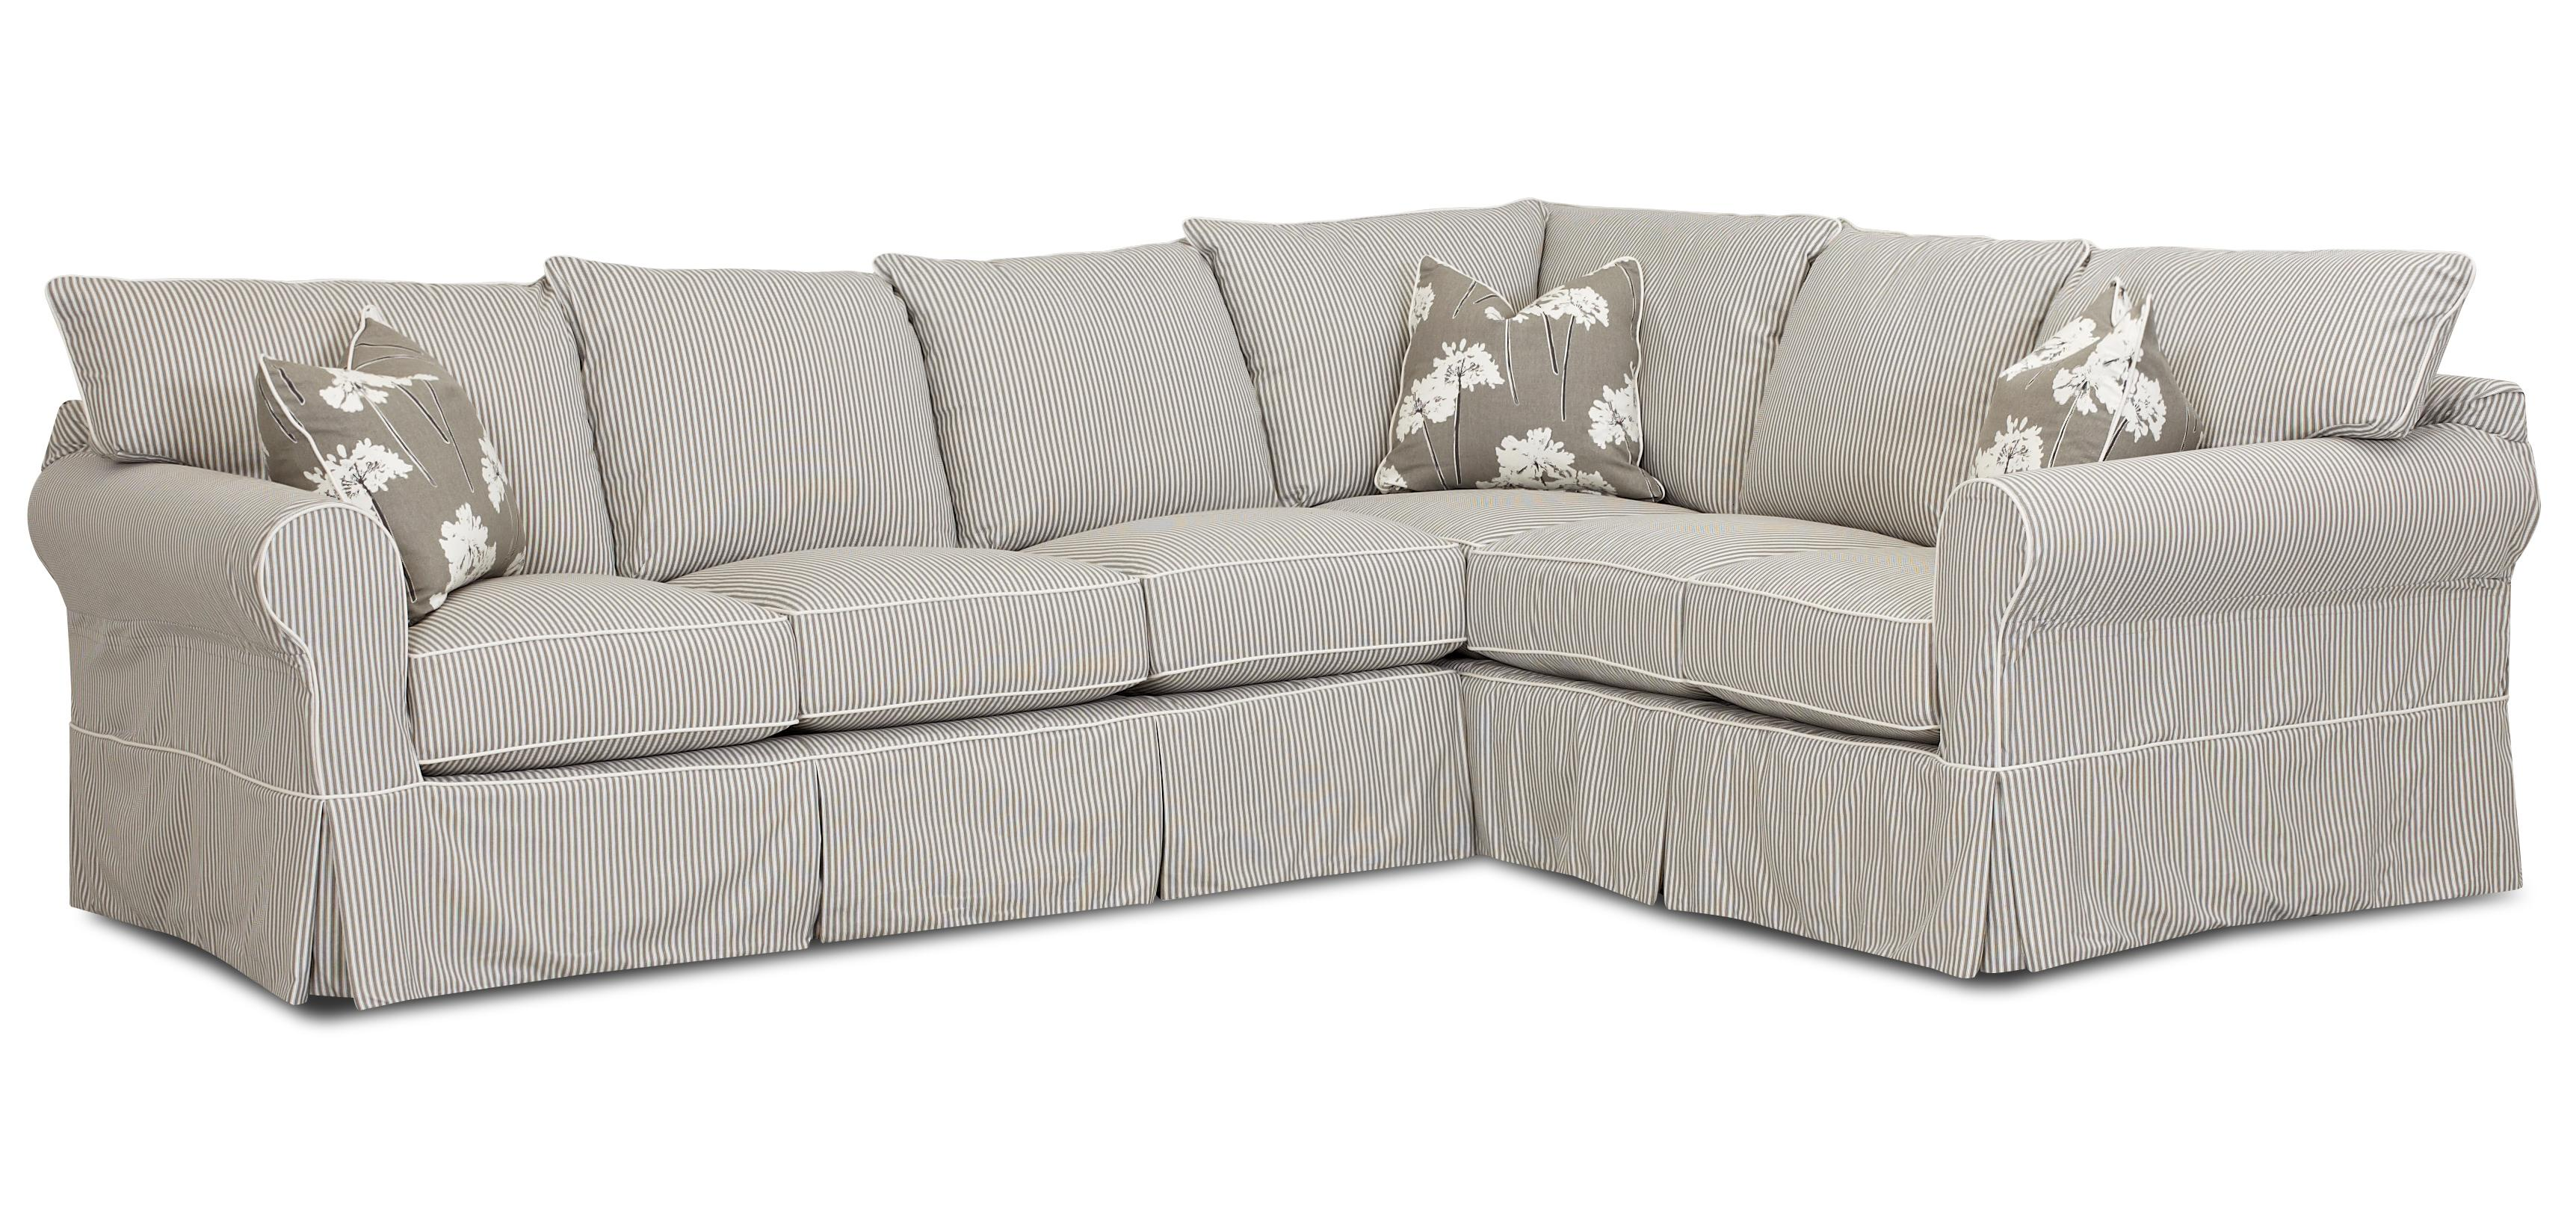 Klaussner Jenny Transitional 2 Piece Sectional Sofa